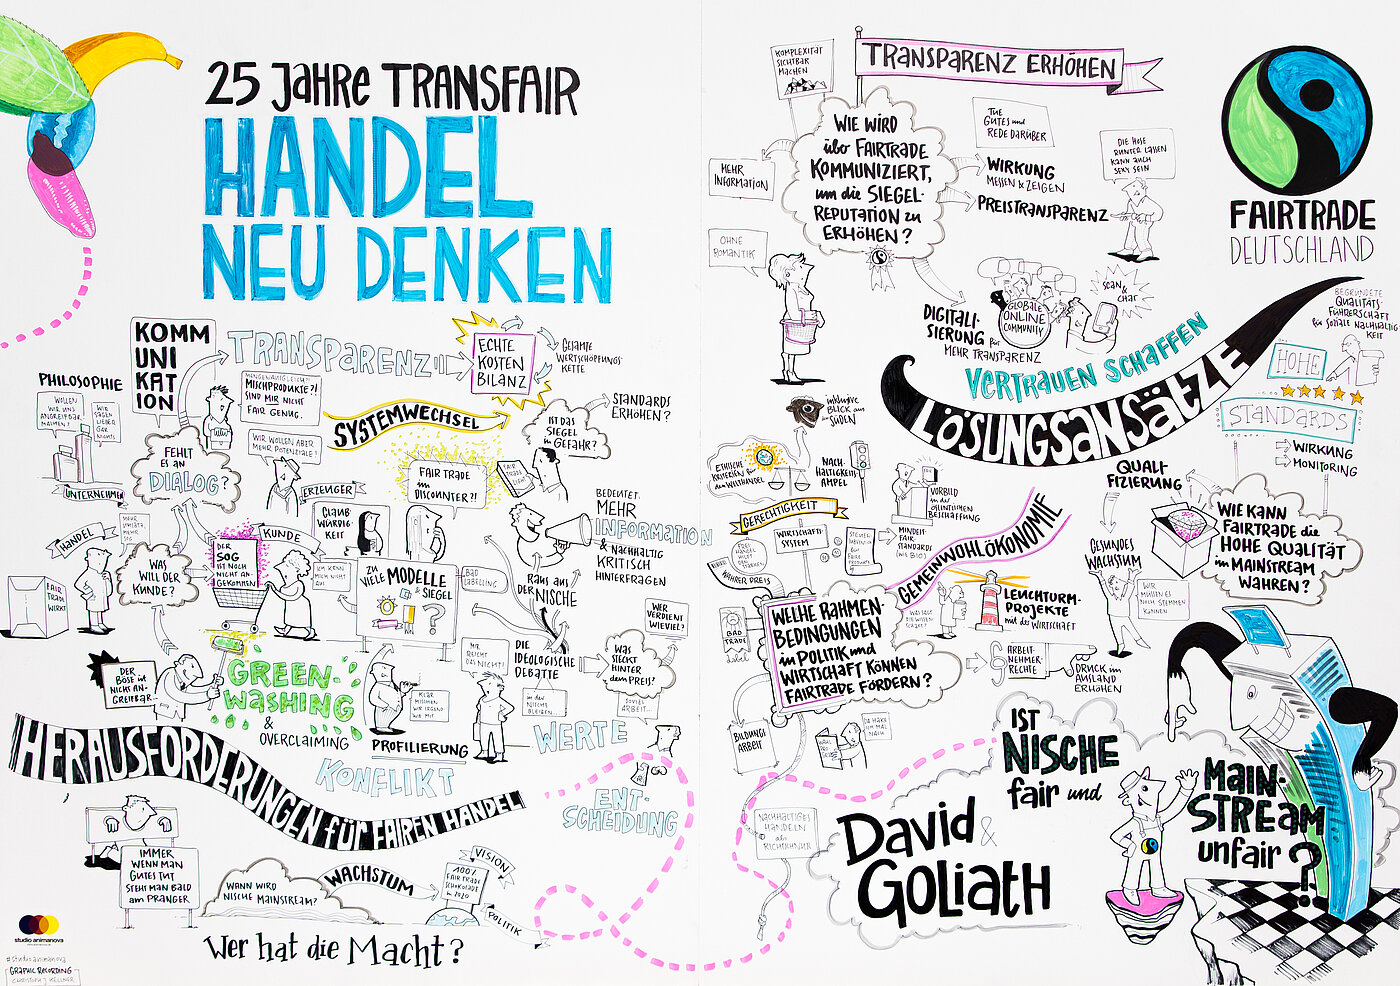 Graphic Recording Workshop 5 - Nische vs. Mainstream